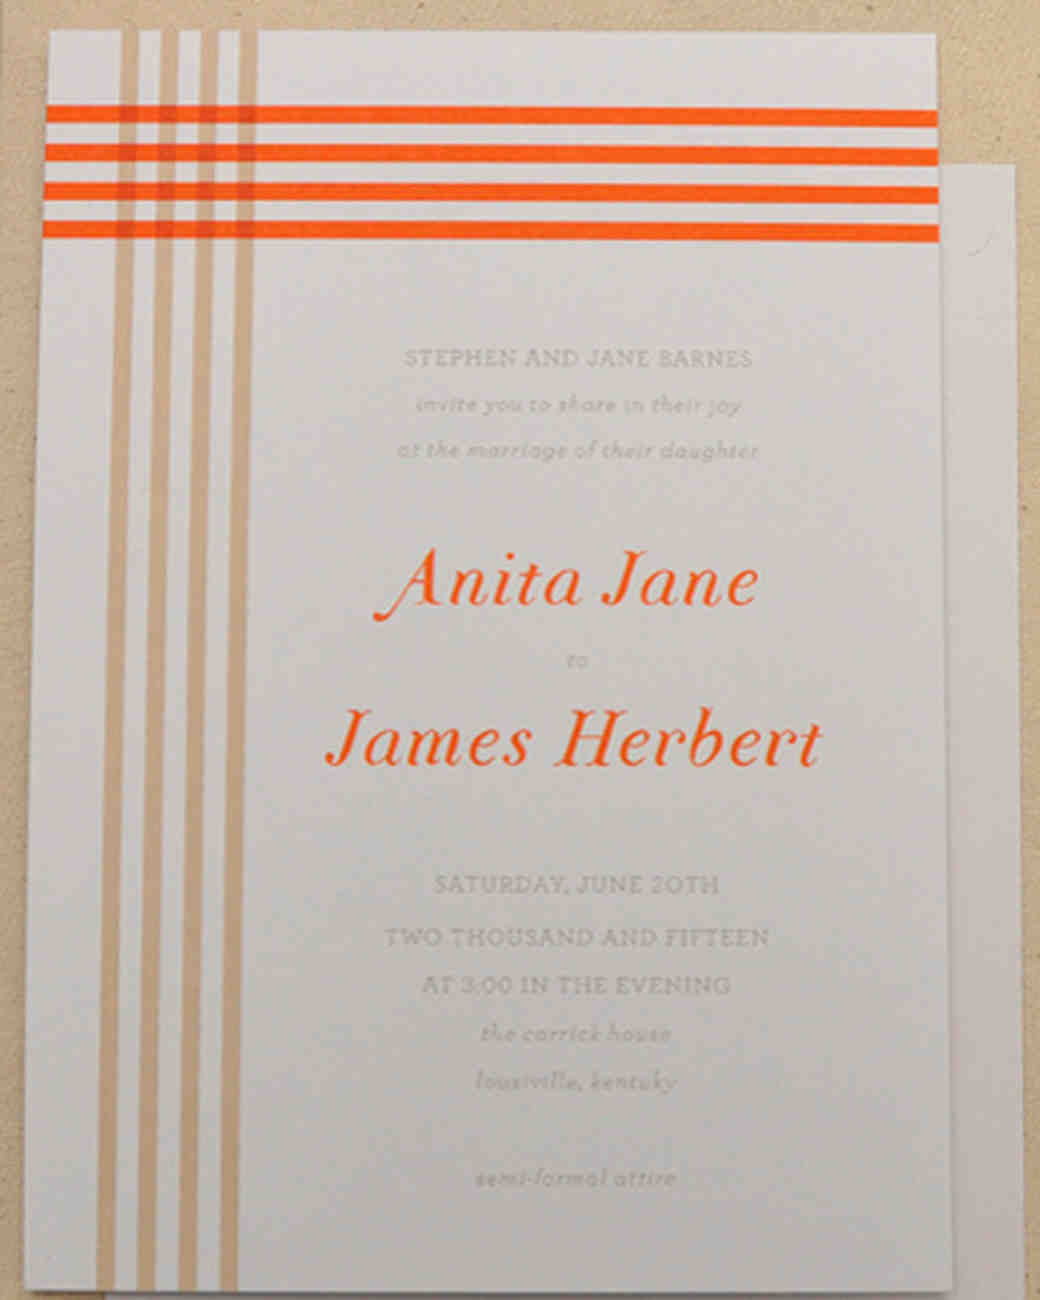 modern-invitation-orange-plaid-24.jpg